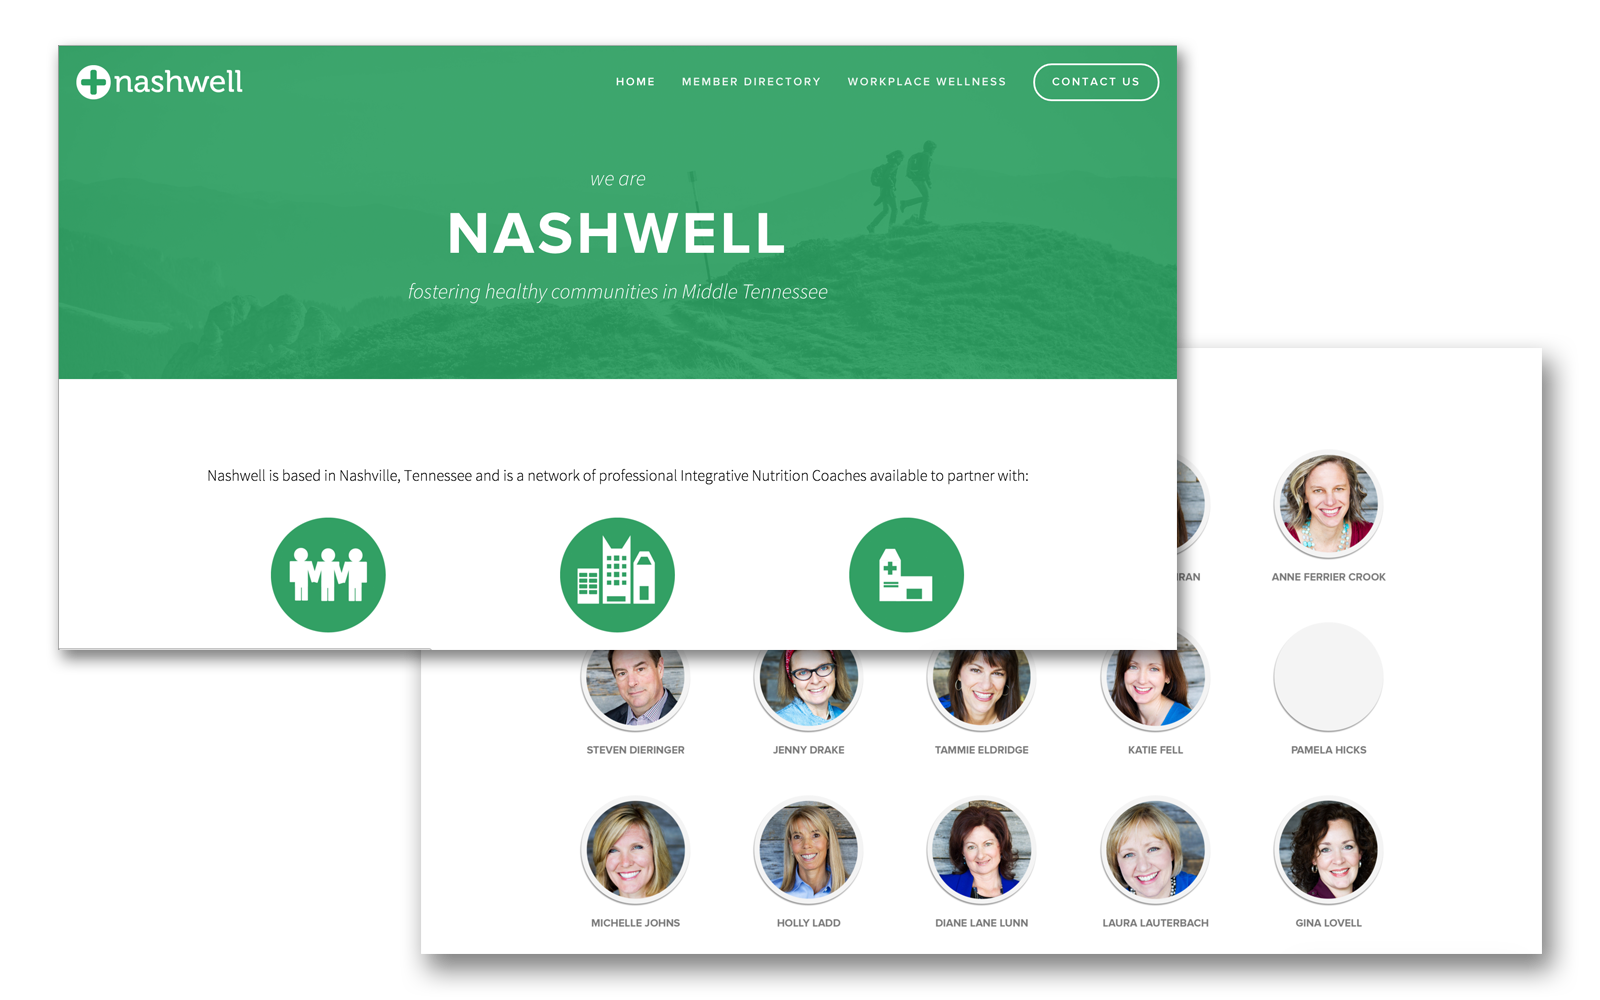 visit nashwell.com to see the full site.